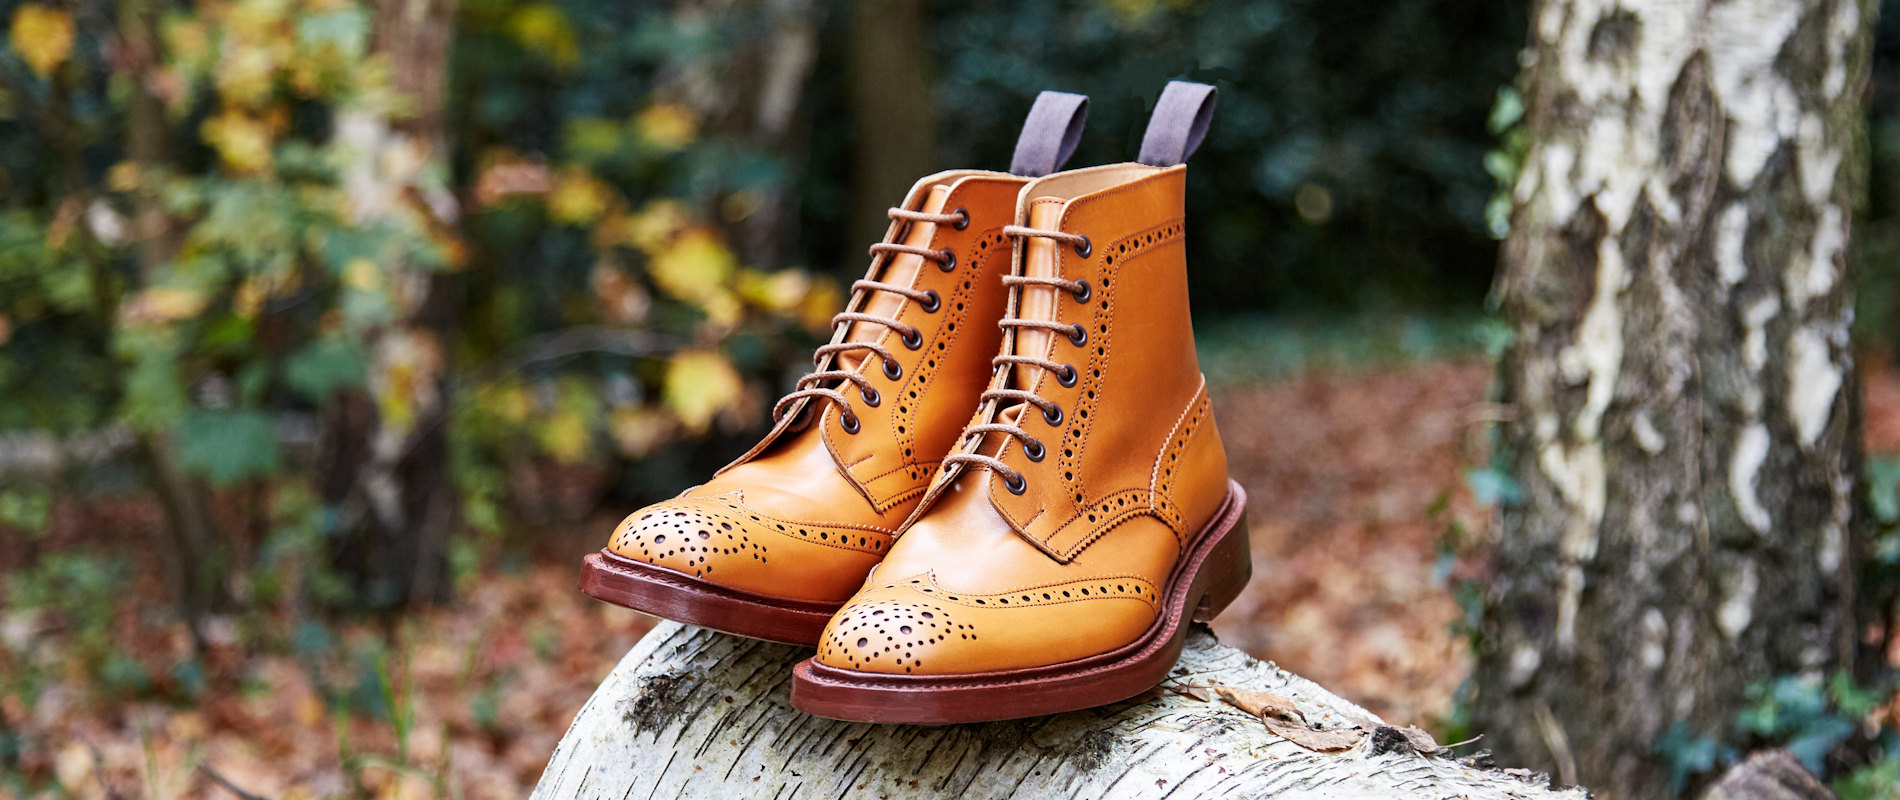 Trickers England